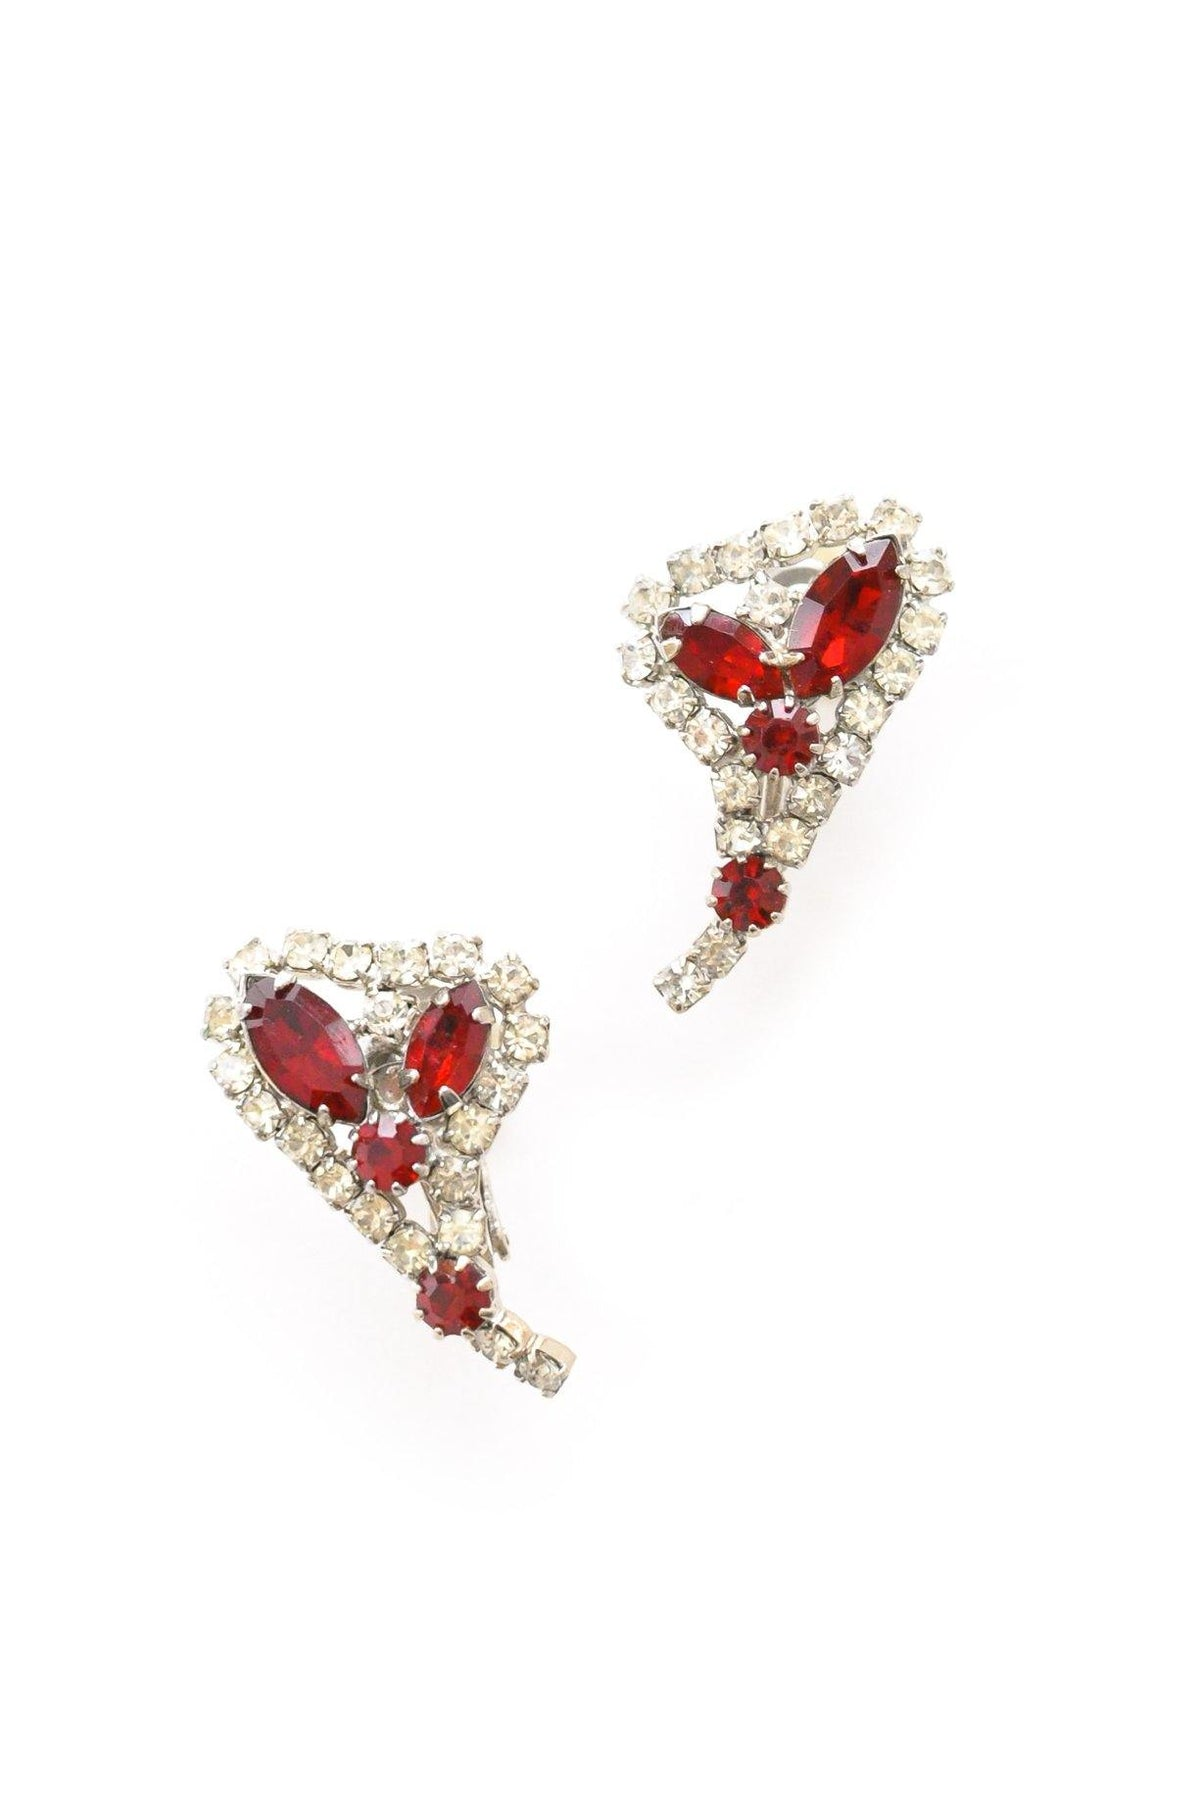 Ruby rhinestone statement crawler earrings.